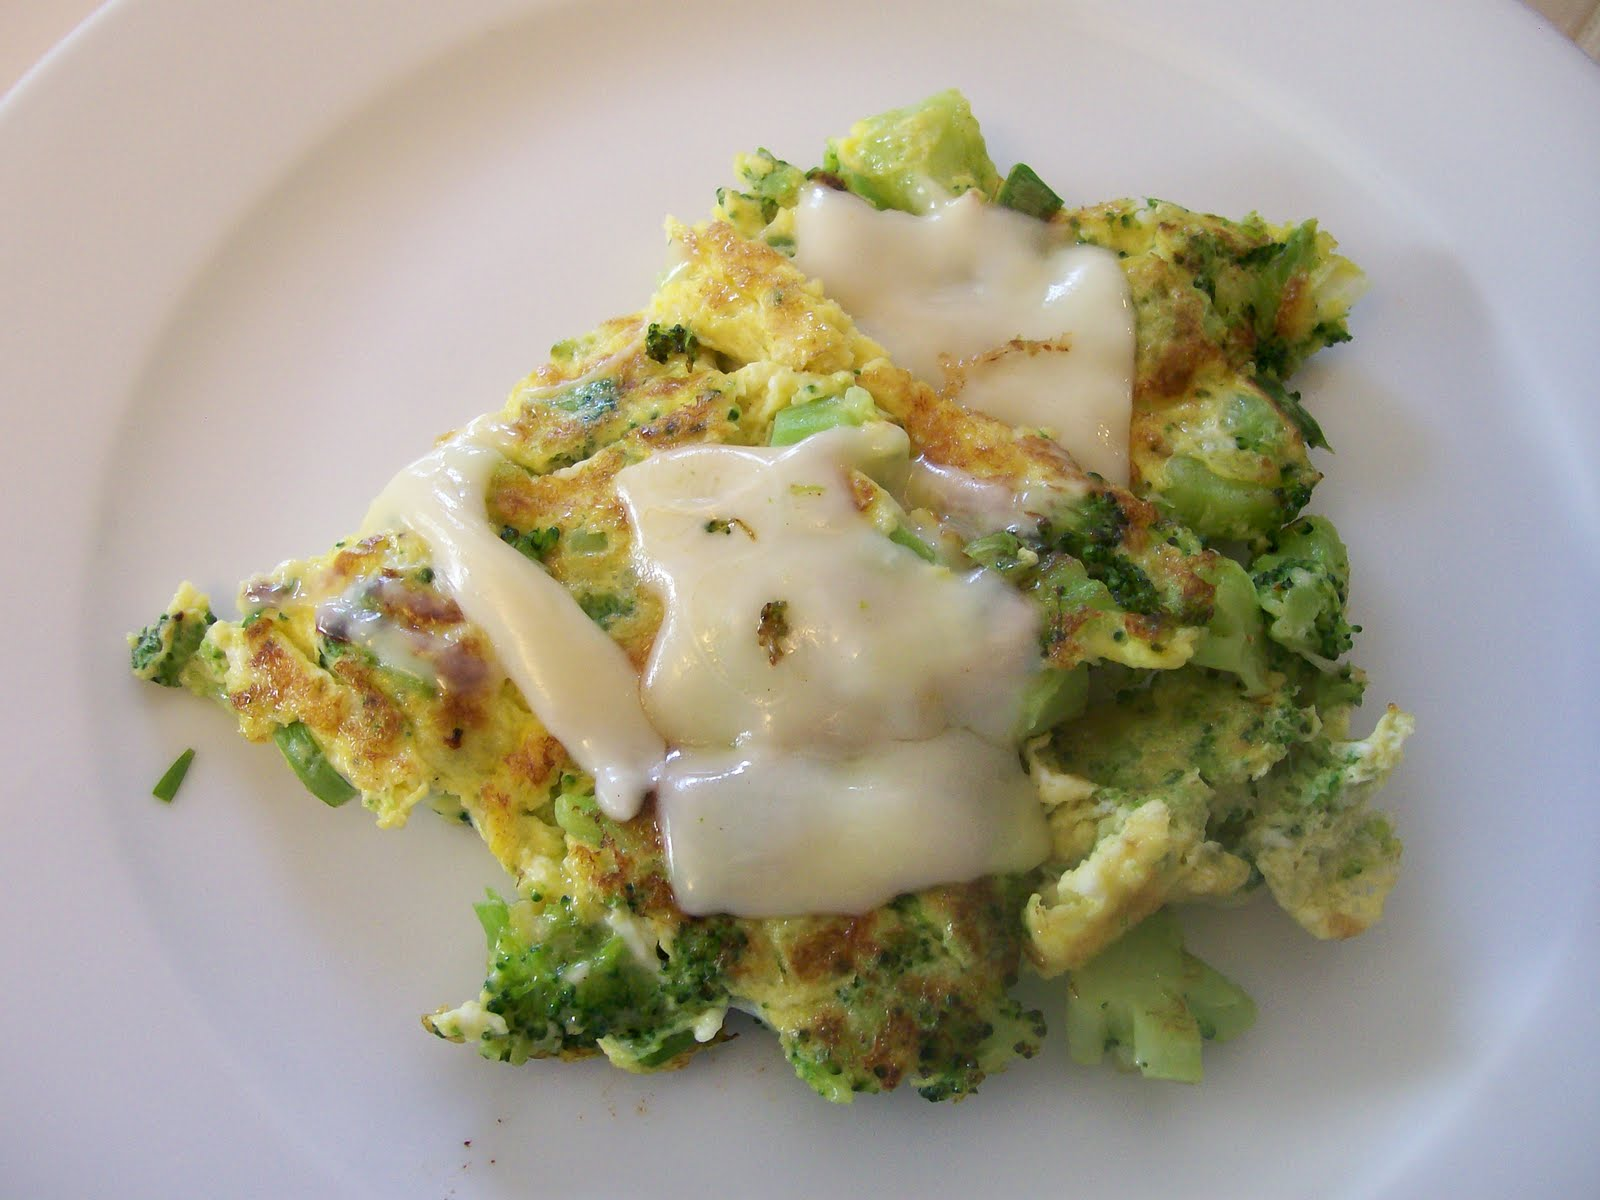 Broccoli+Cheese+Frittata.JPG